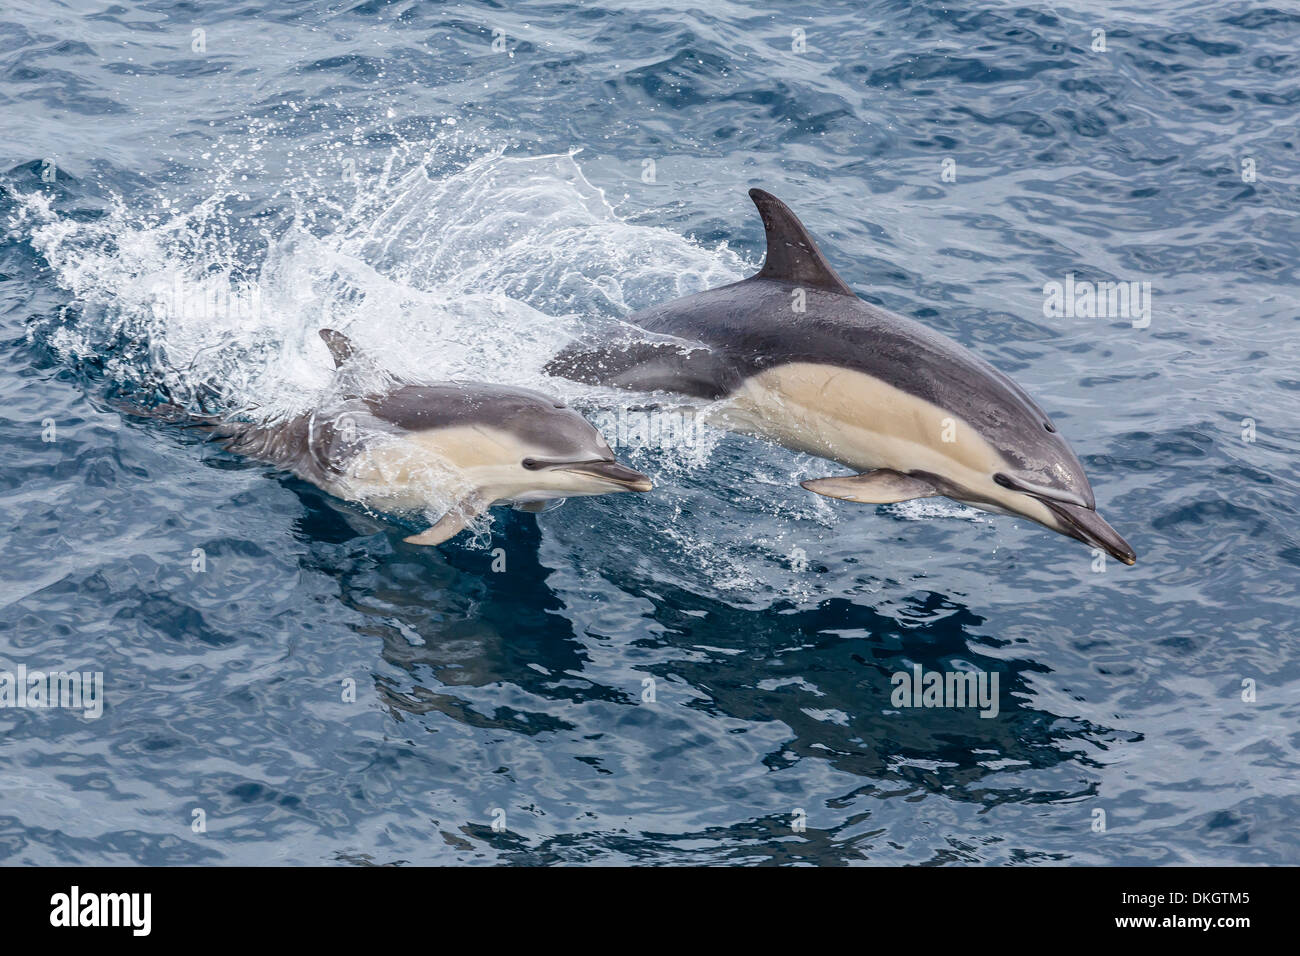 Long-beaked common dolphin (Delphinus capensis) leaping near White Island, North Island, New Zealand, Pacific - Stock Image